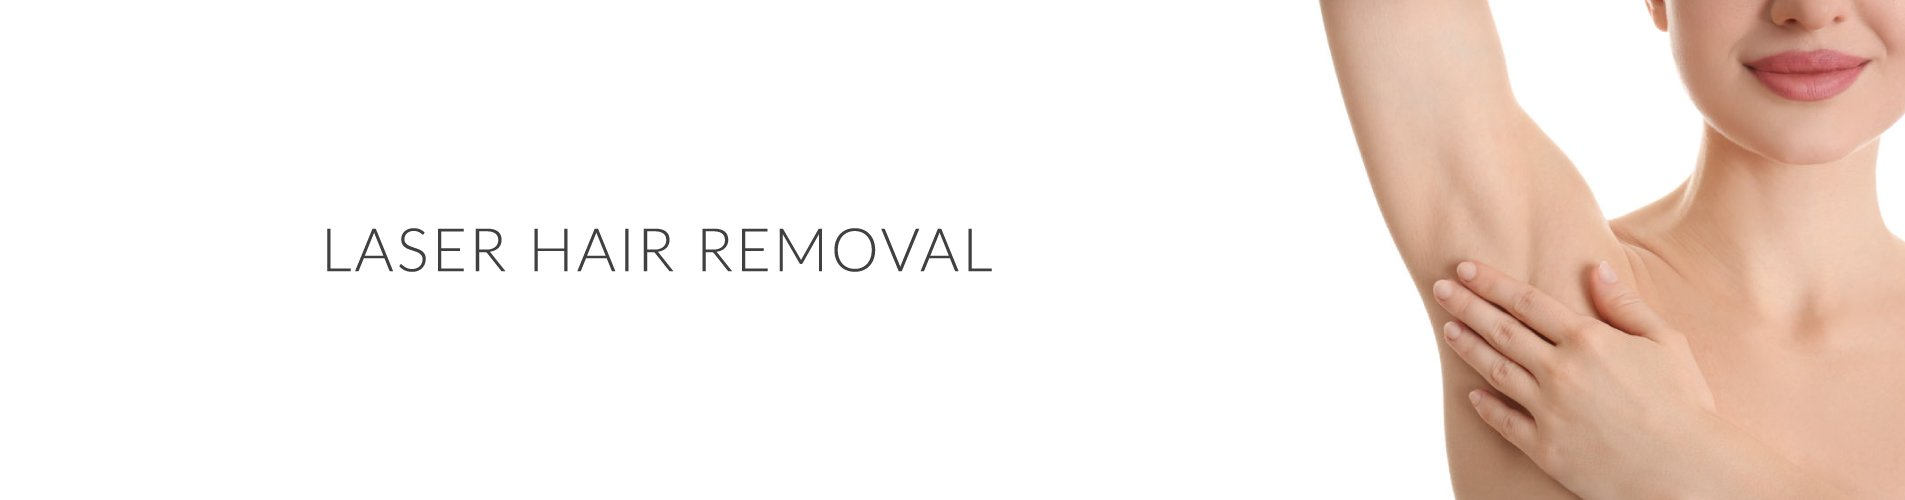 LASER HAIR REMOVAL FOR MEN & WOMEN IN ALTRINCHAM AT REVIVE SKIN & HAIR CLINIC